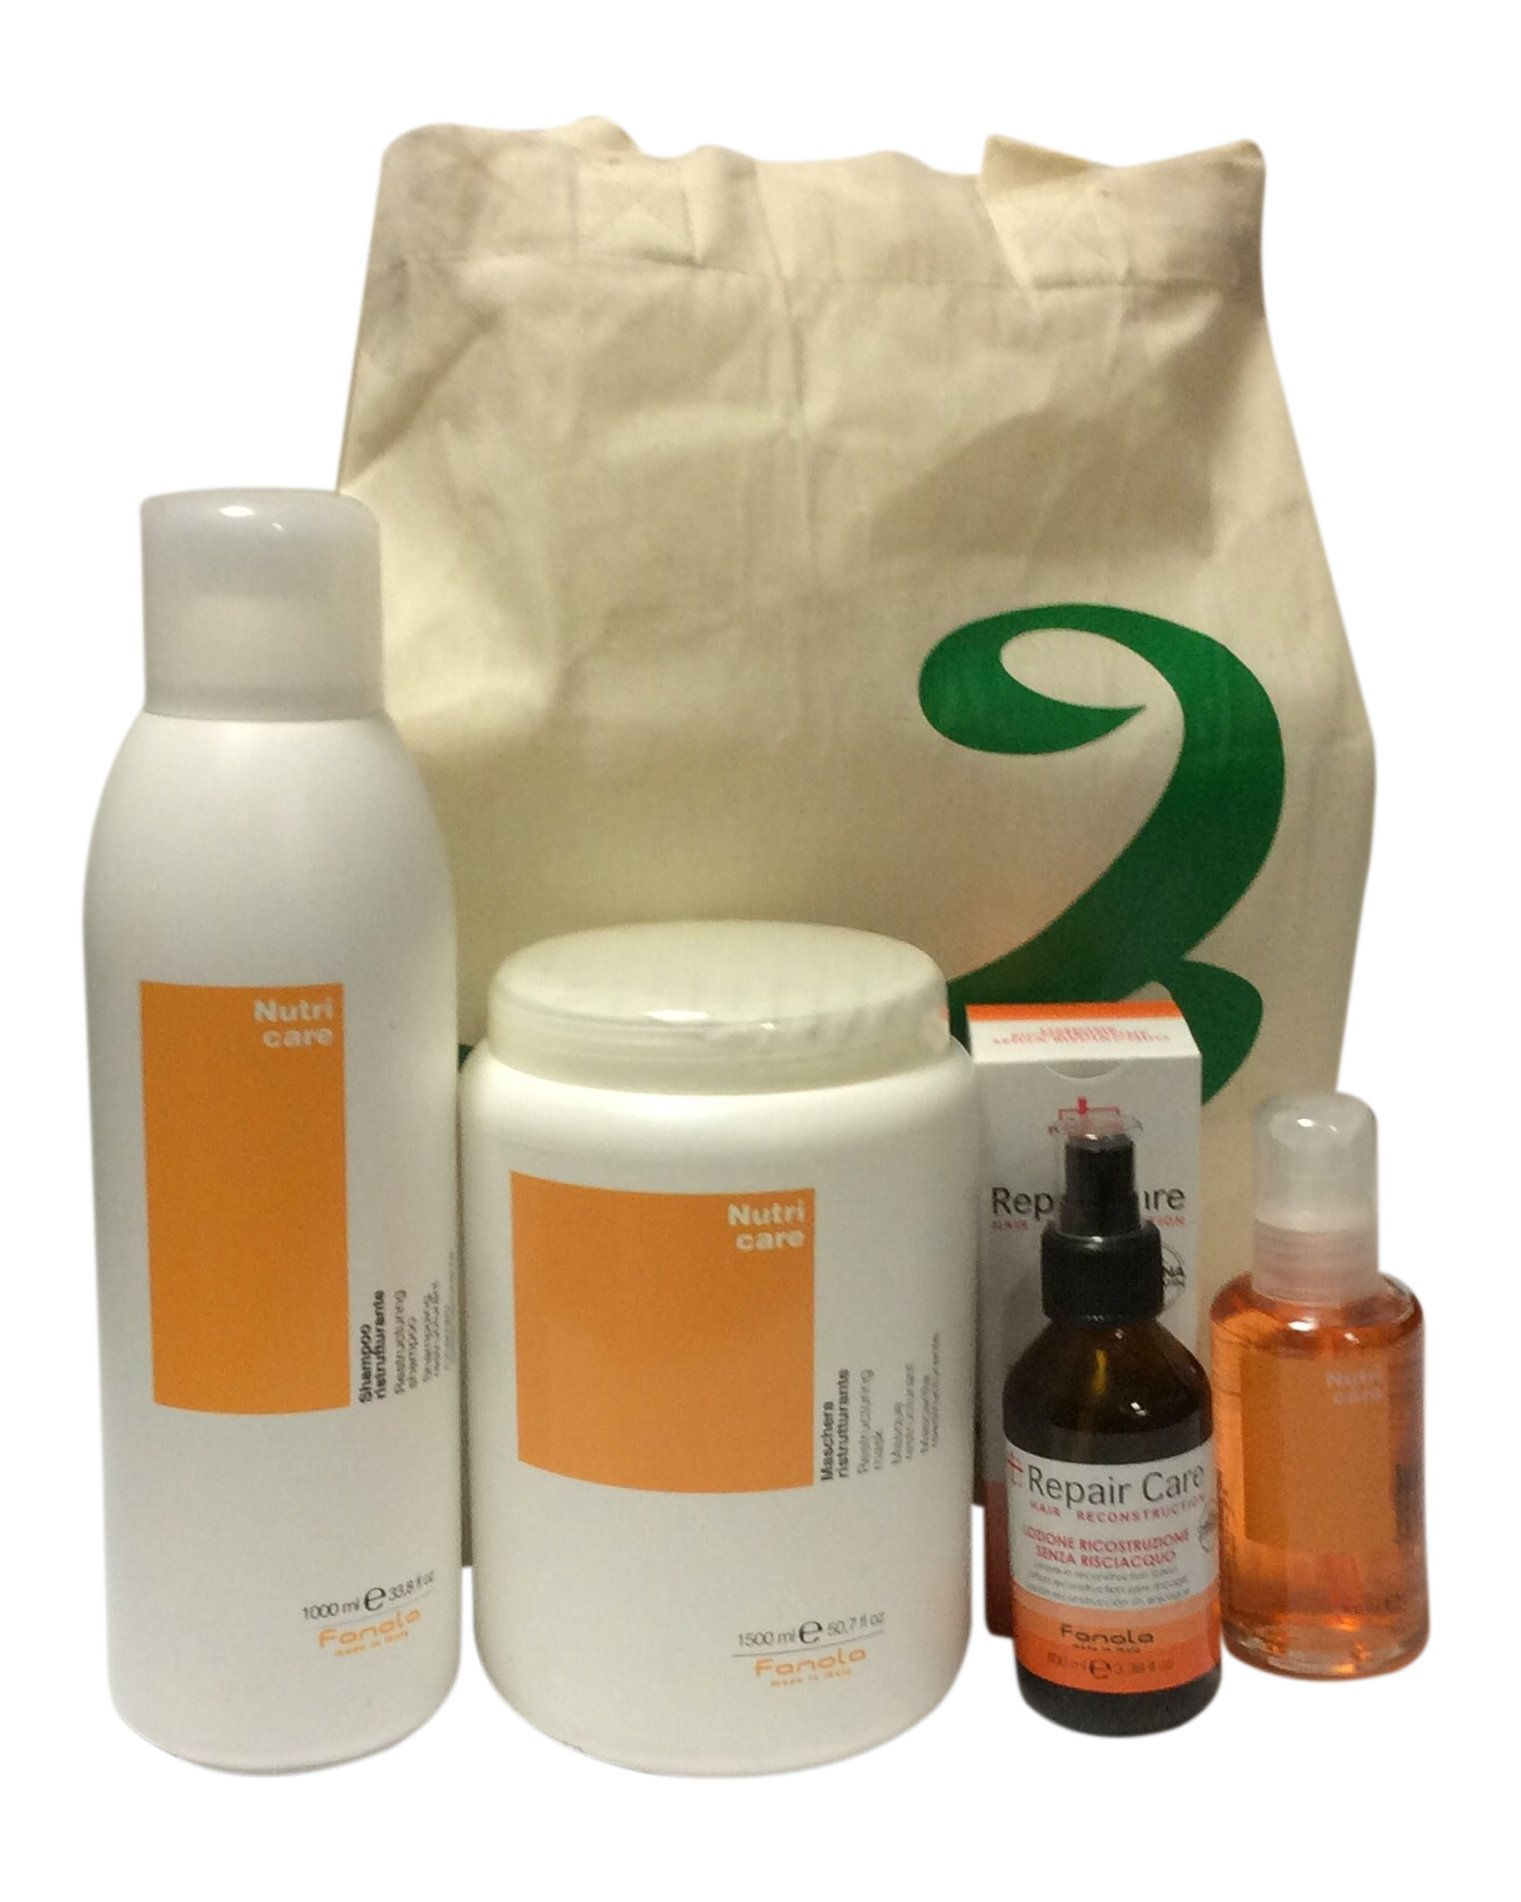 Fanola Nutri Care Restructuring Kit for Very Dry Hair Made in Italy